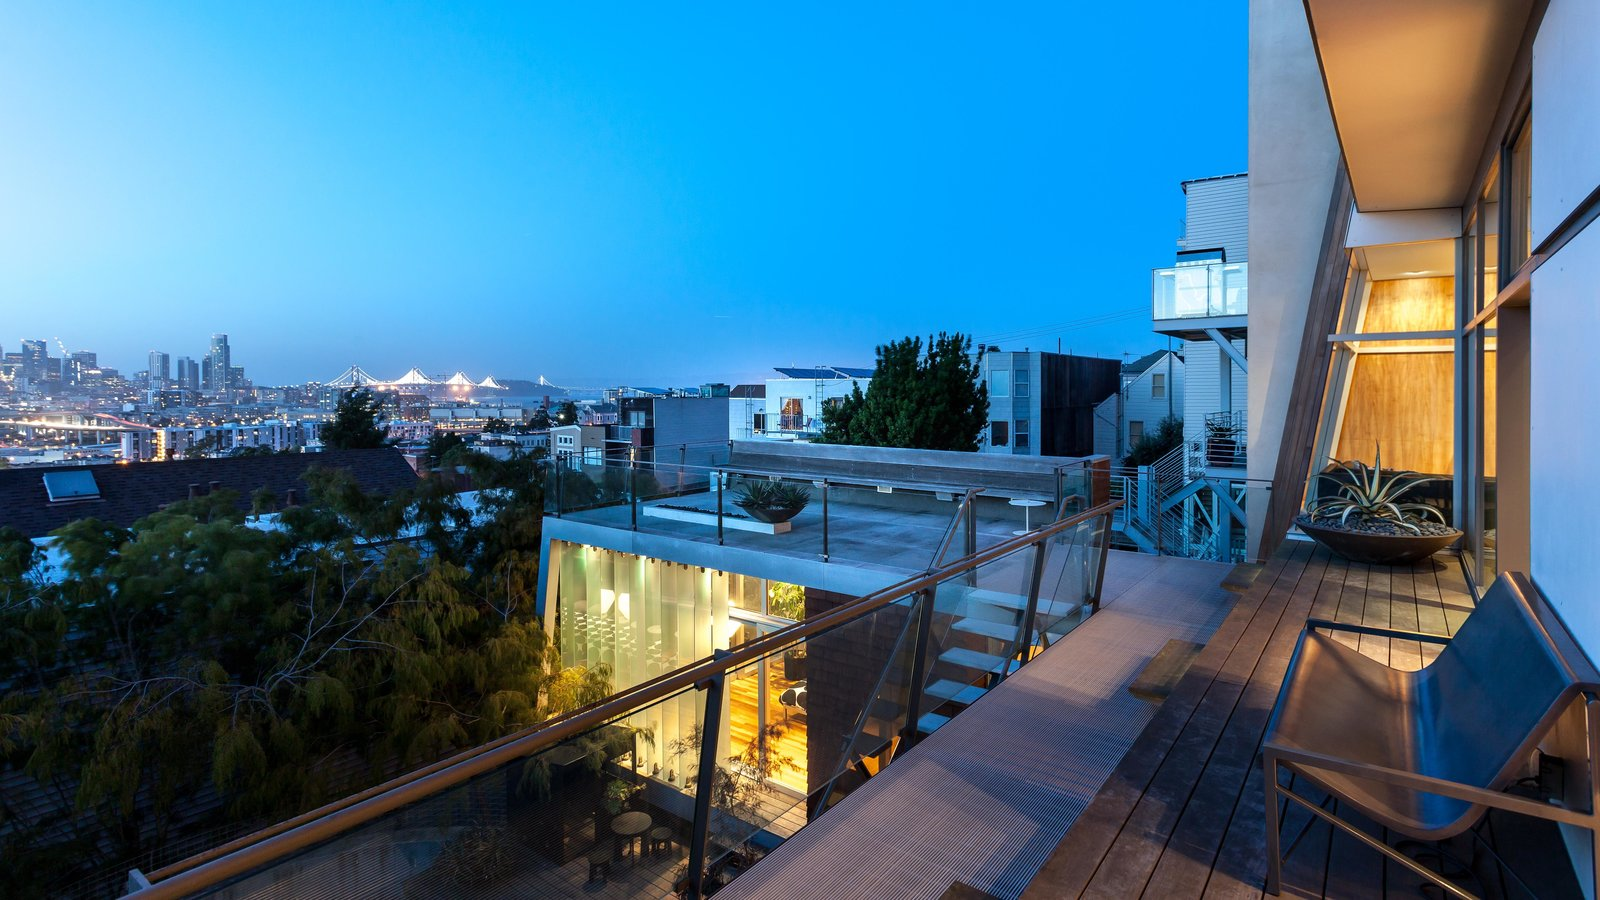 The evening view of the glass louvered studio below with the roof deck.